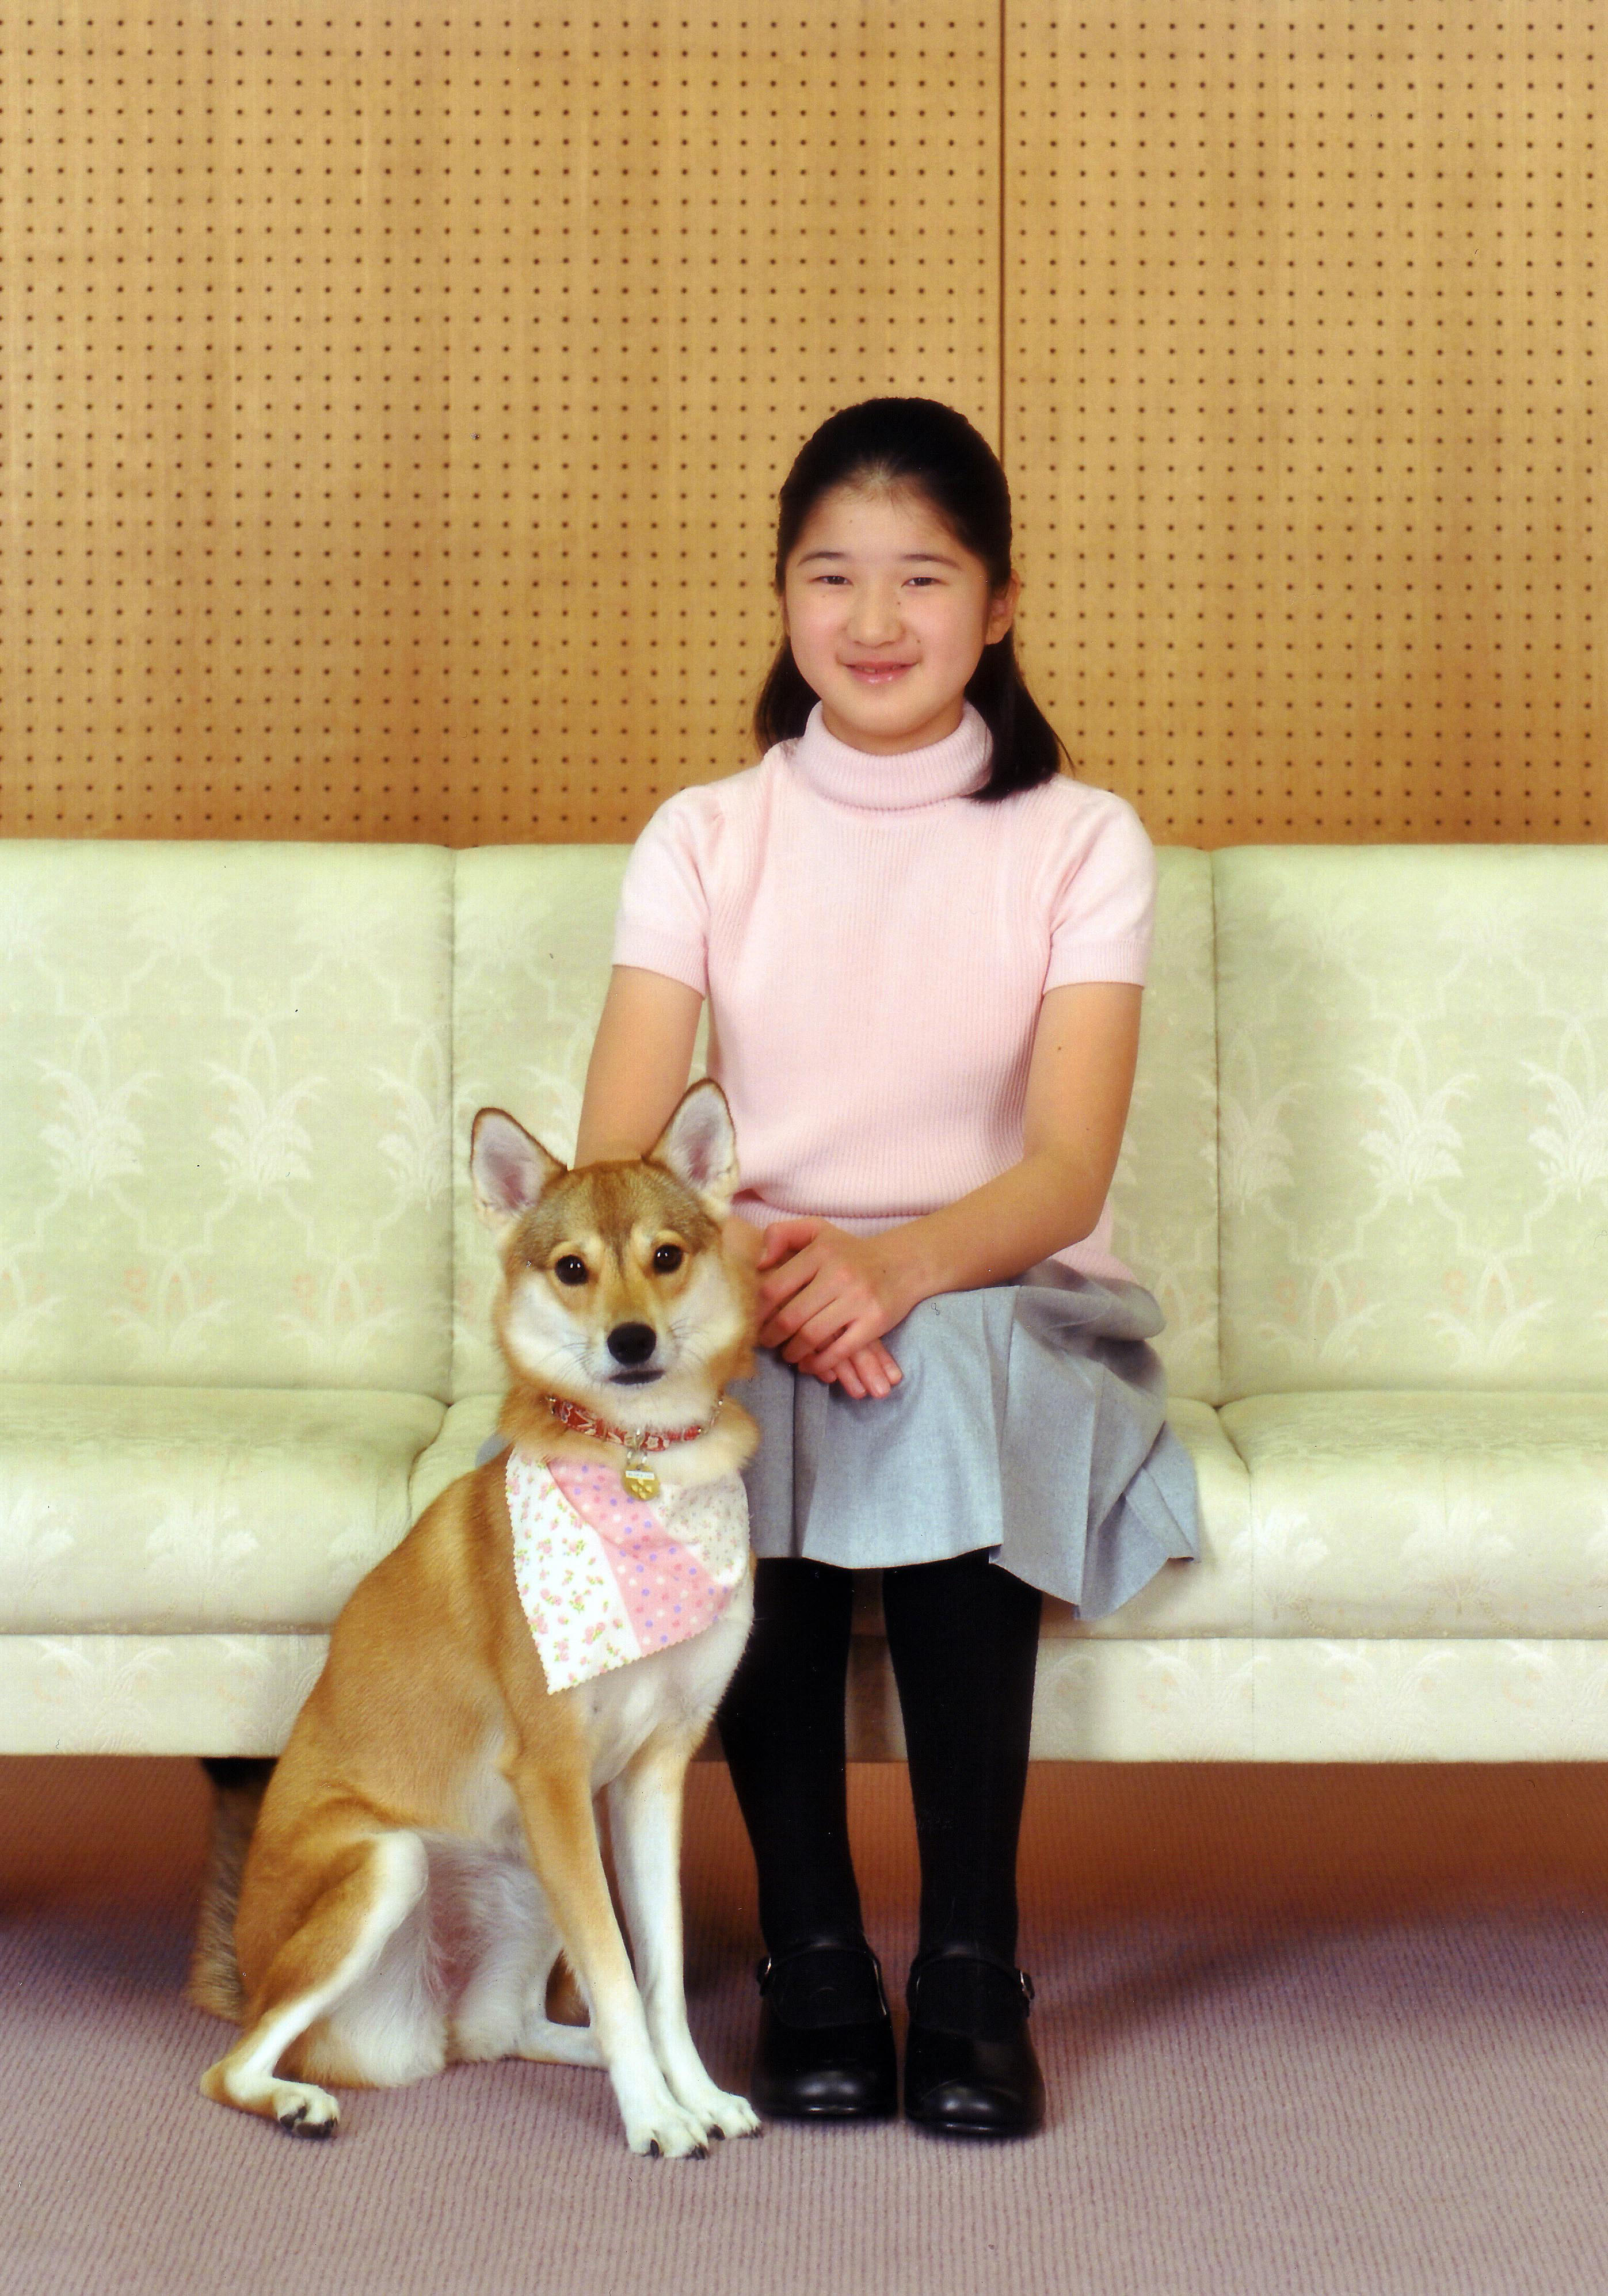 Big girl: Princess Aiko, who turned 11 Saturday, poses with her pet ...